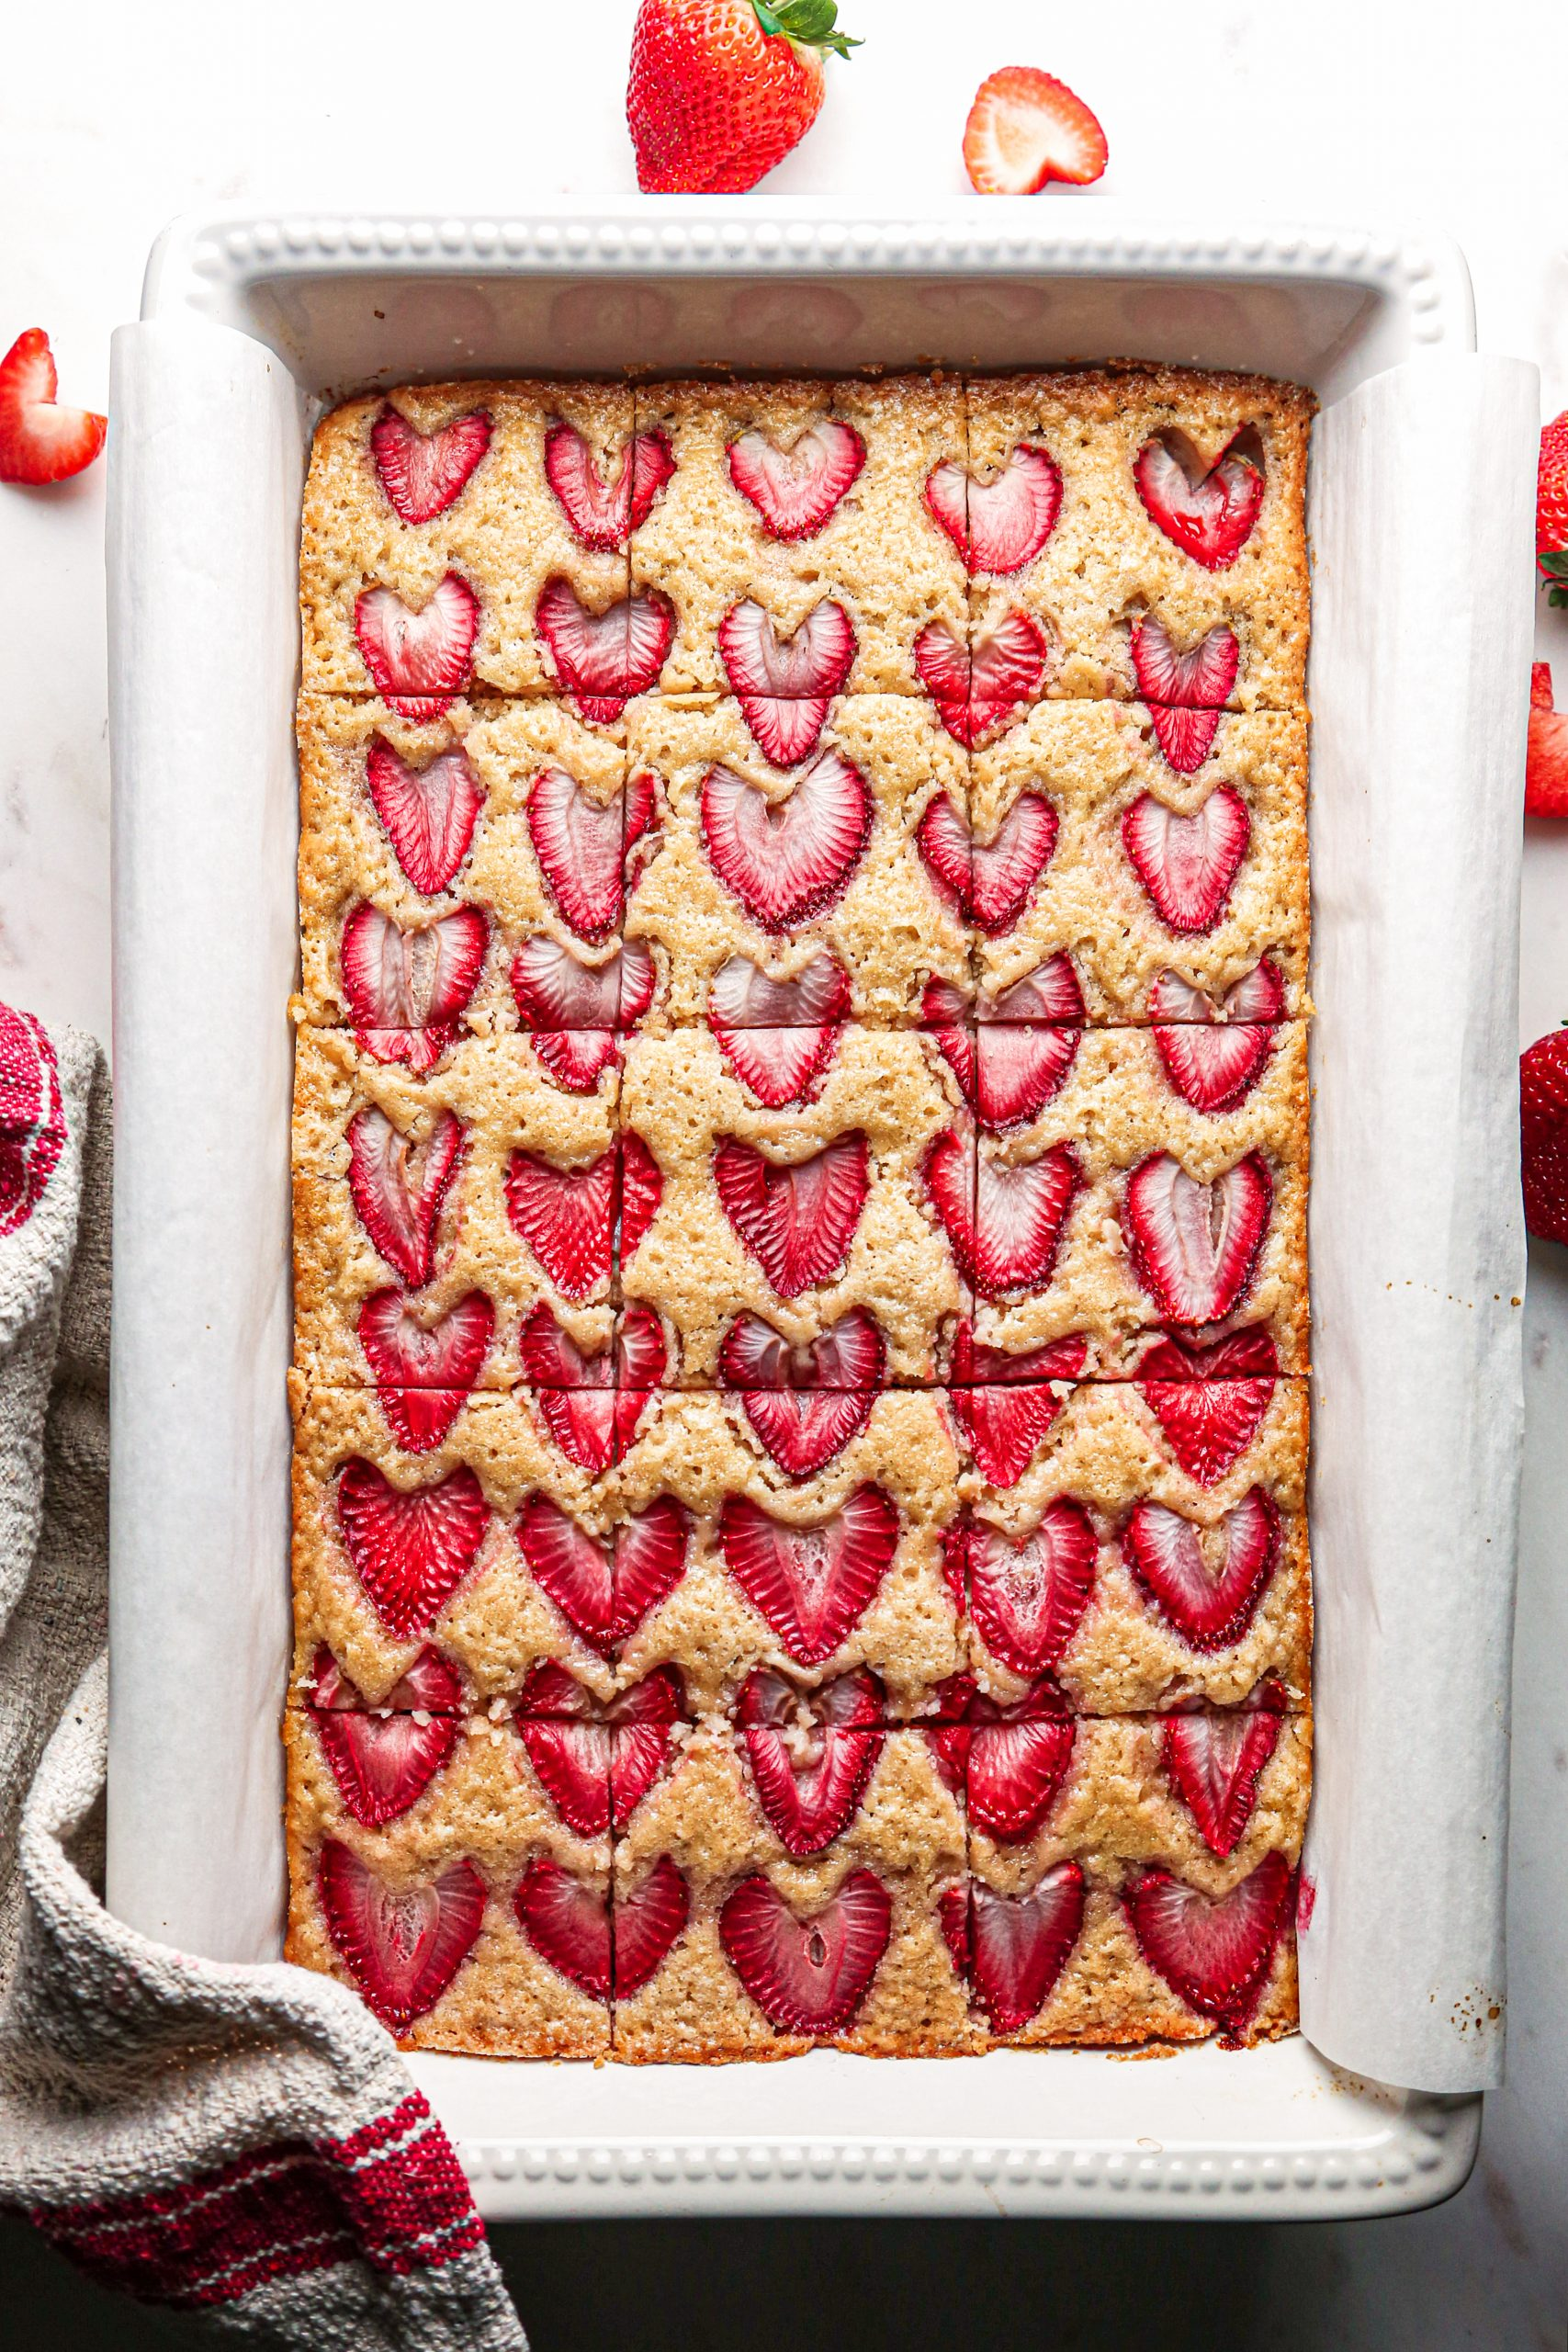 Vegan Strawberry Snack Cake | Gluten-Free option included